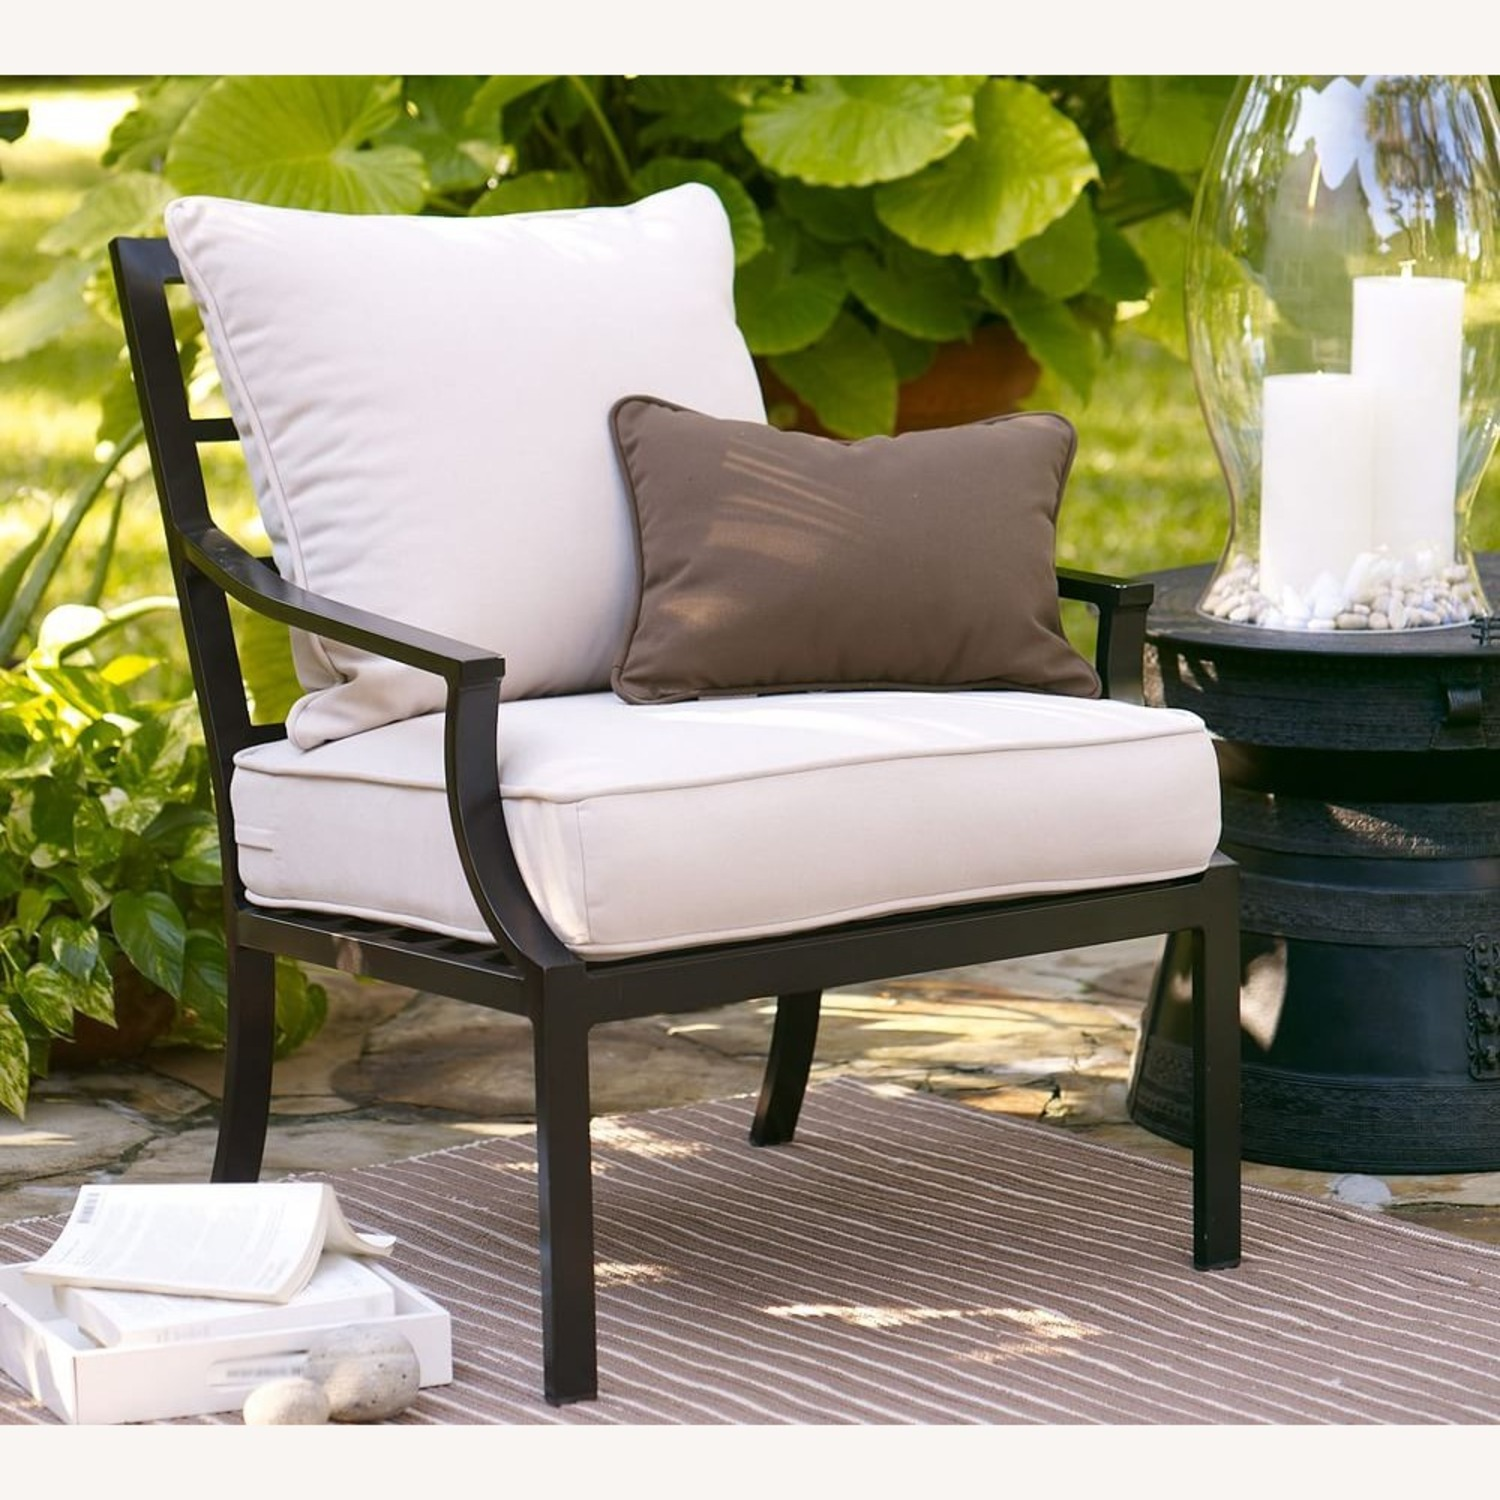 Pottery Barn Riviera Lounge Chair Frame, Black - image-1